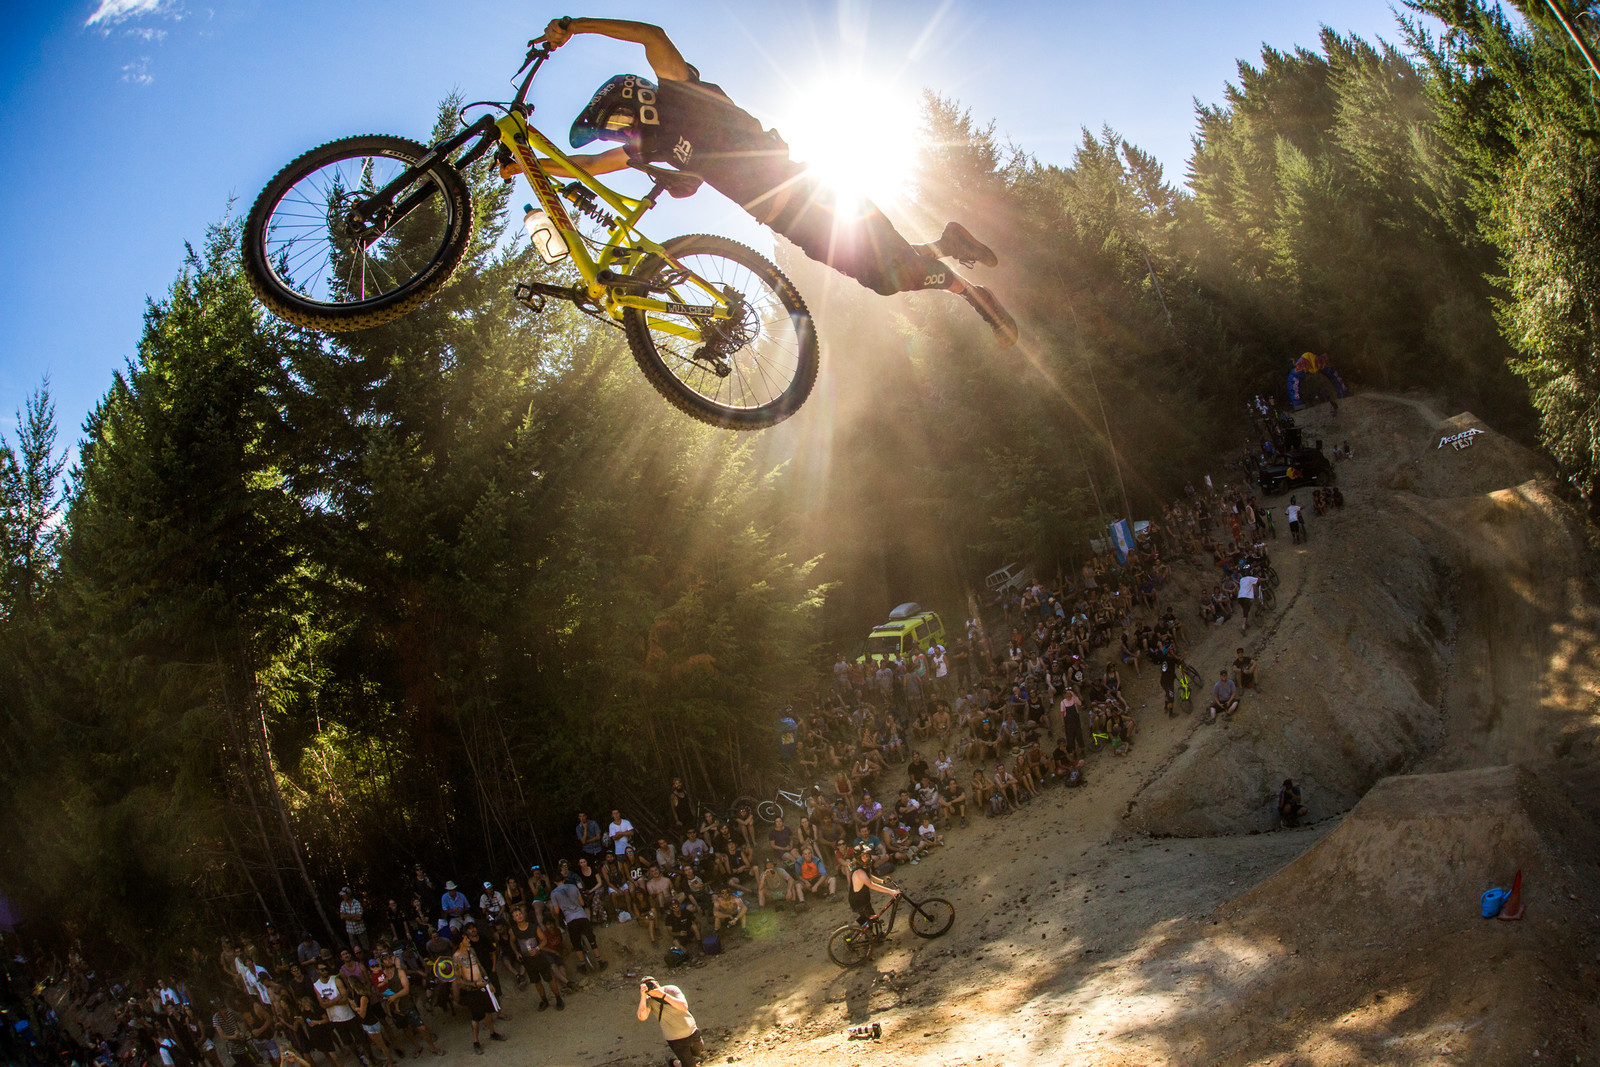 Oliver Cuvet - McGazza Fest Dream Track Jam - Mountain Biking Pictures - Vital MTB